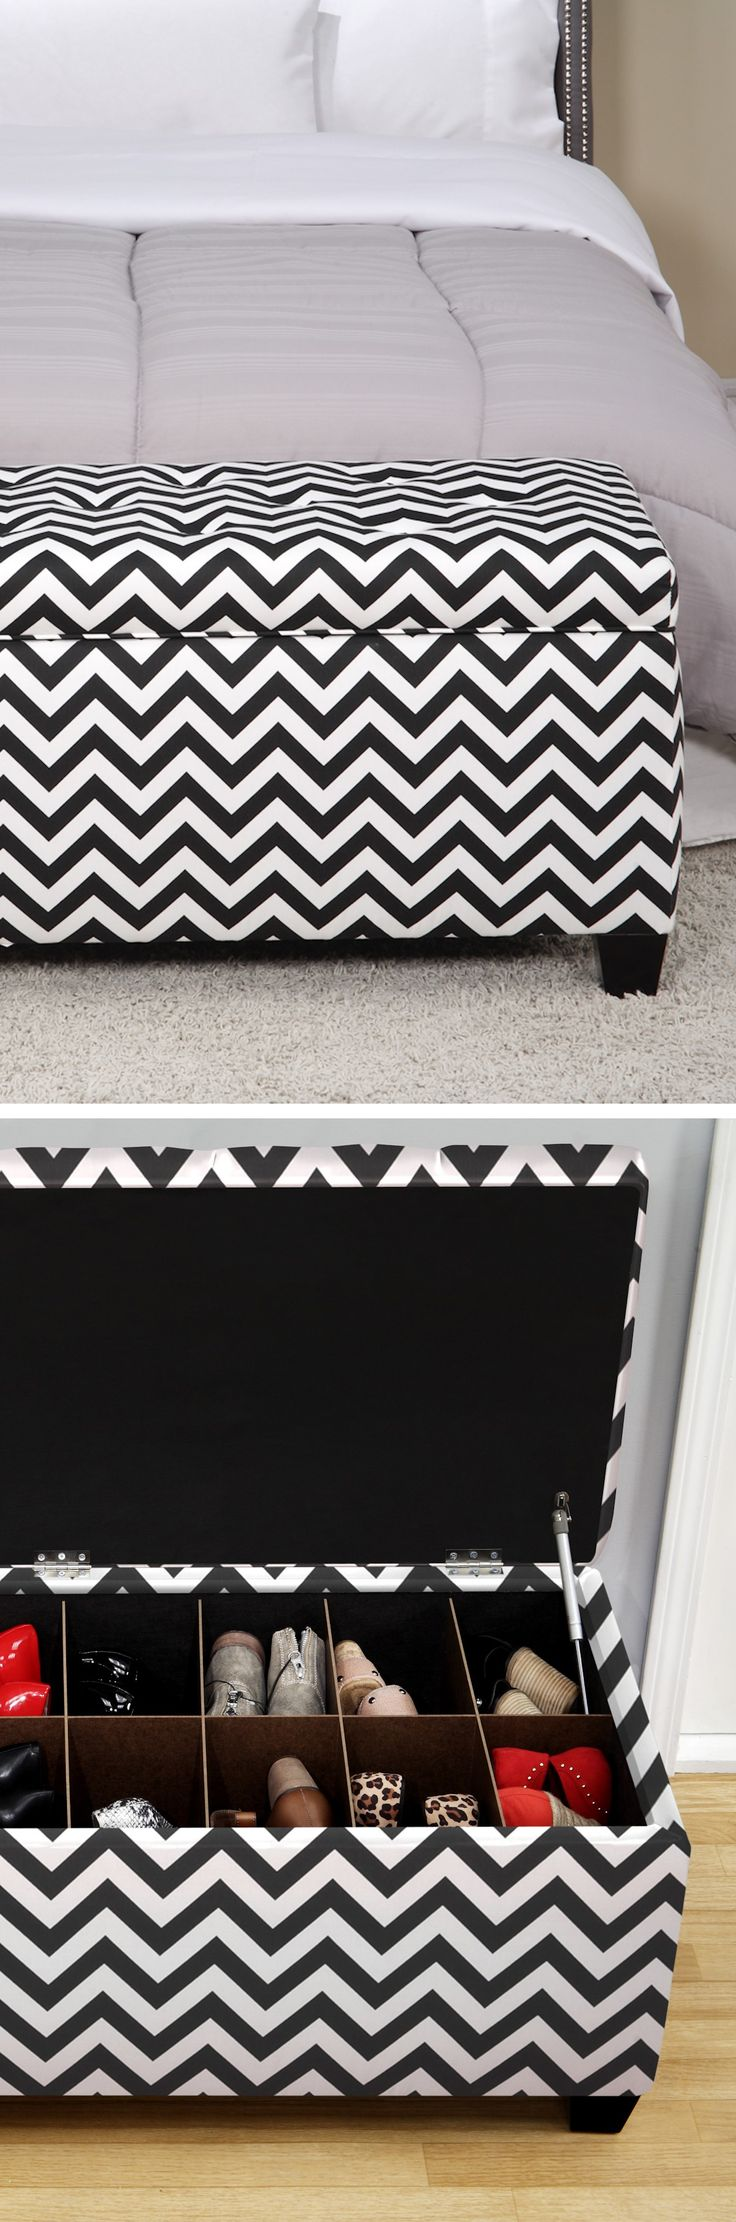 Chevron shoe storage ottoman bench // Need this! So perfect for bedroom or hall organisation